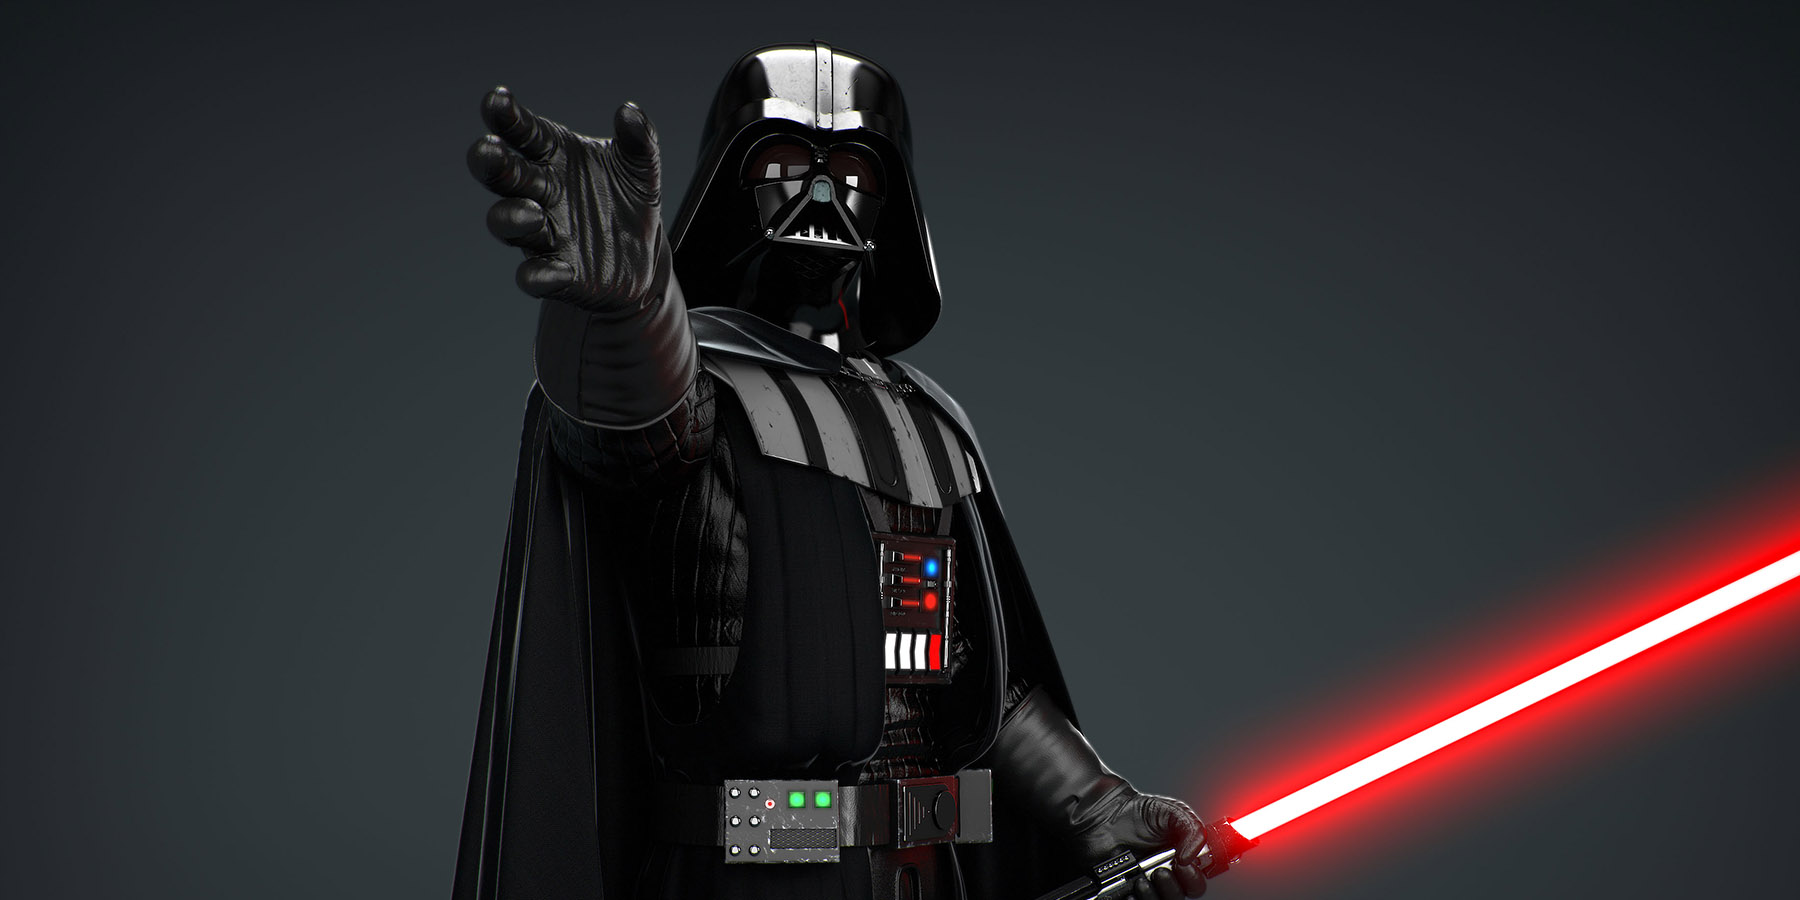 Darth Vader Wallpaper and Background 1800x900 ID813003